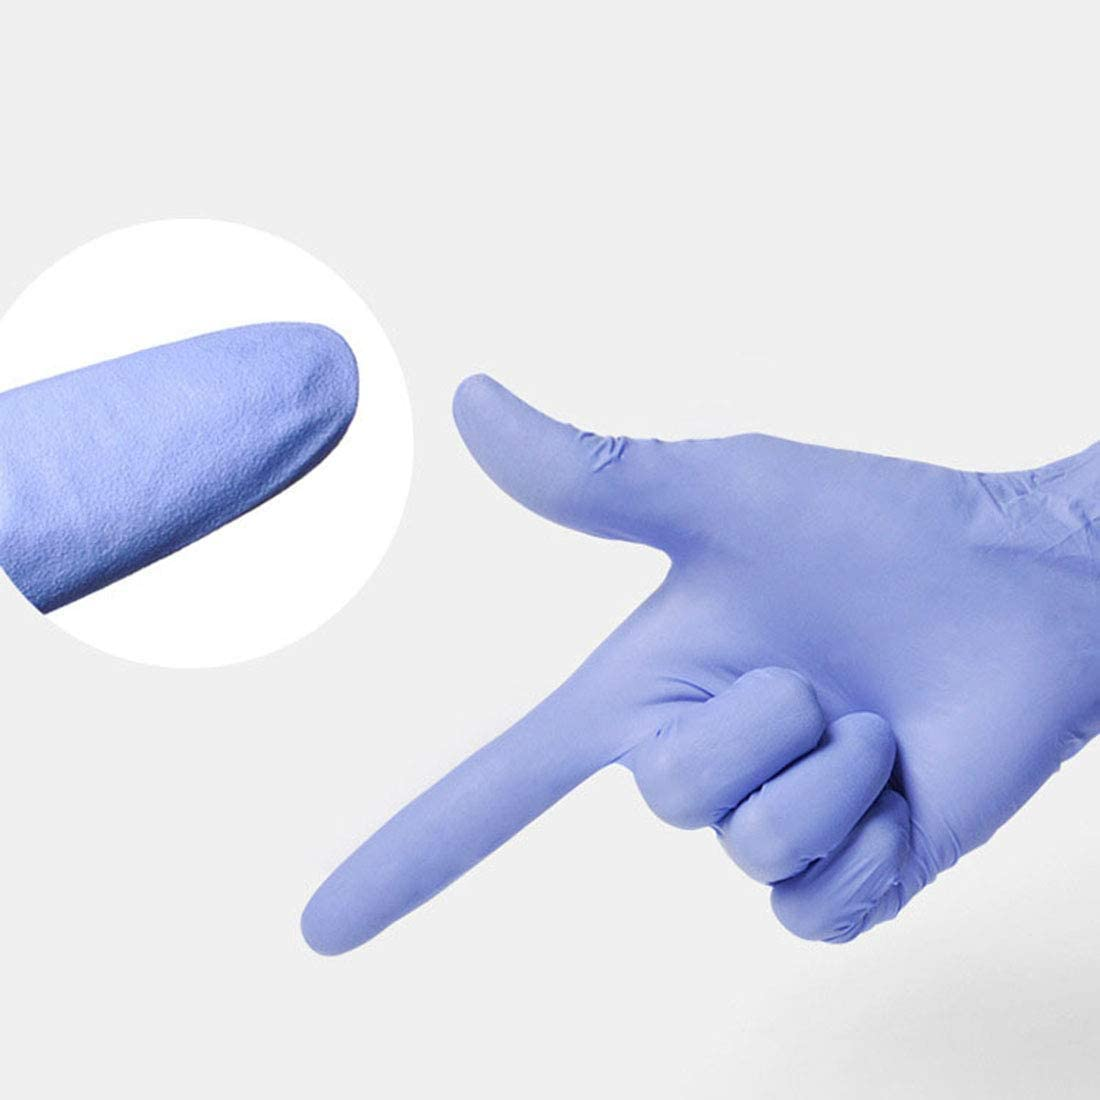 Cleaning Bverionant 100PCS Nitrile Disposable Exam Gloves Powder-Free Gloves for Hospitals Sky Blue, Medium